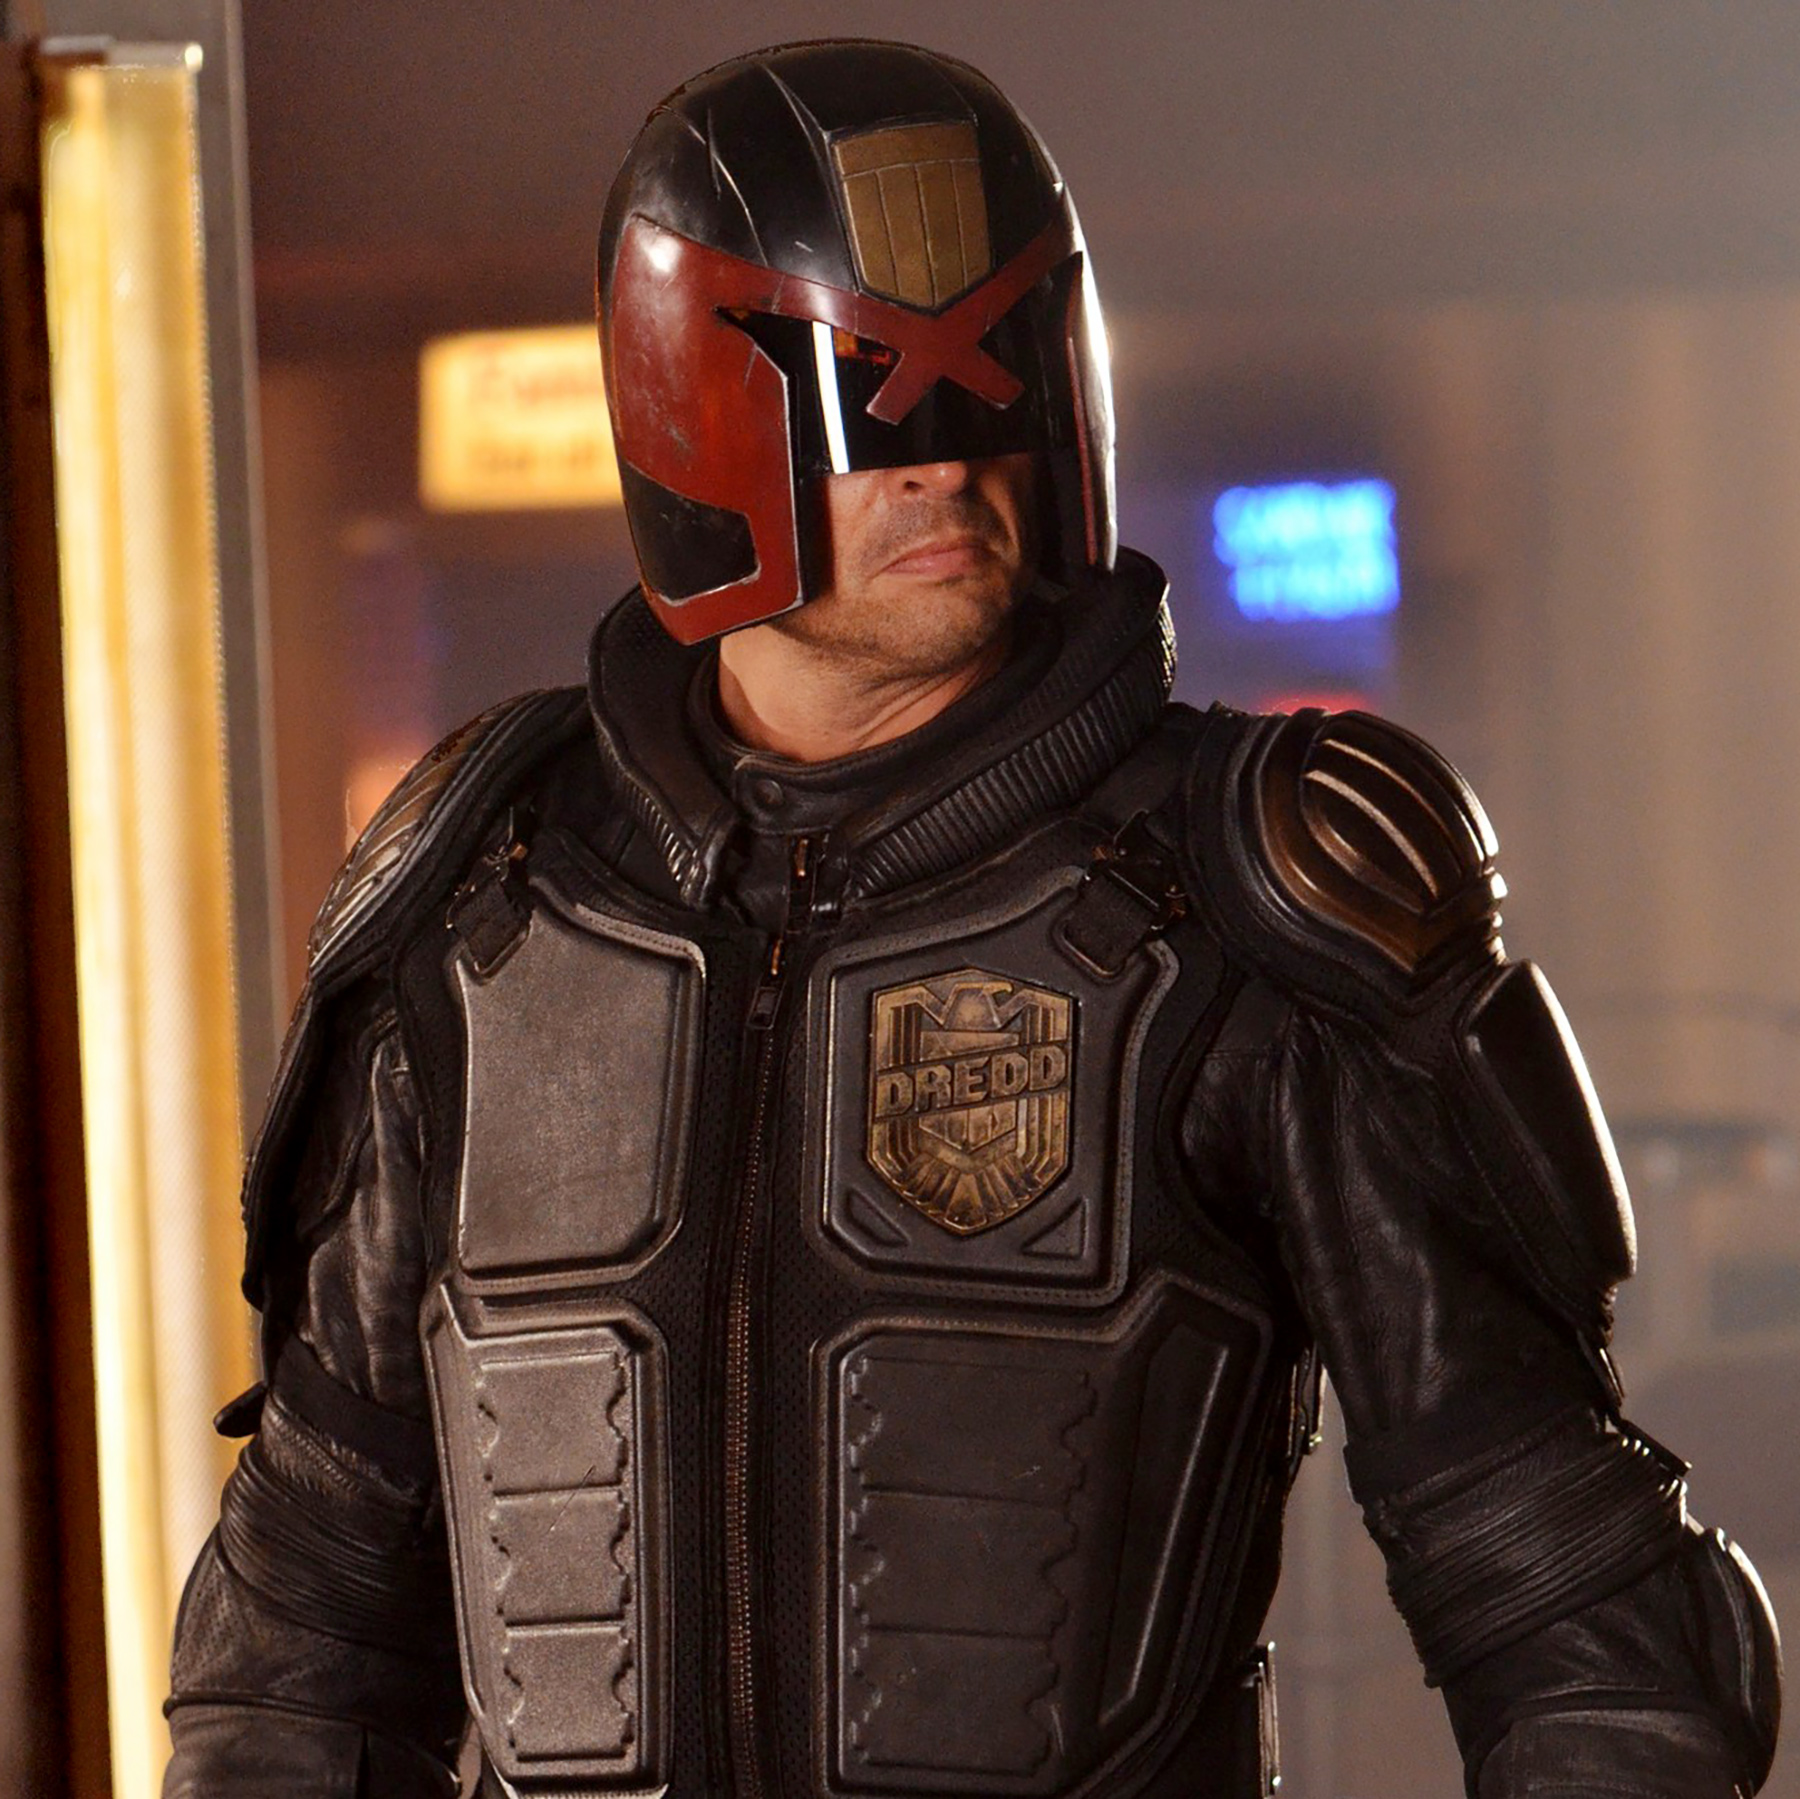 DREDD, (aka DREDD 3D), Karl Urban, 2012. ph: Joe Alblas/©Lionsgate/Courtesy Everett Collection